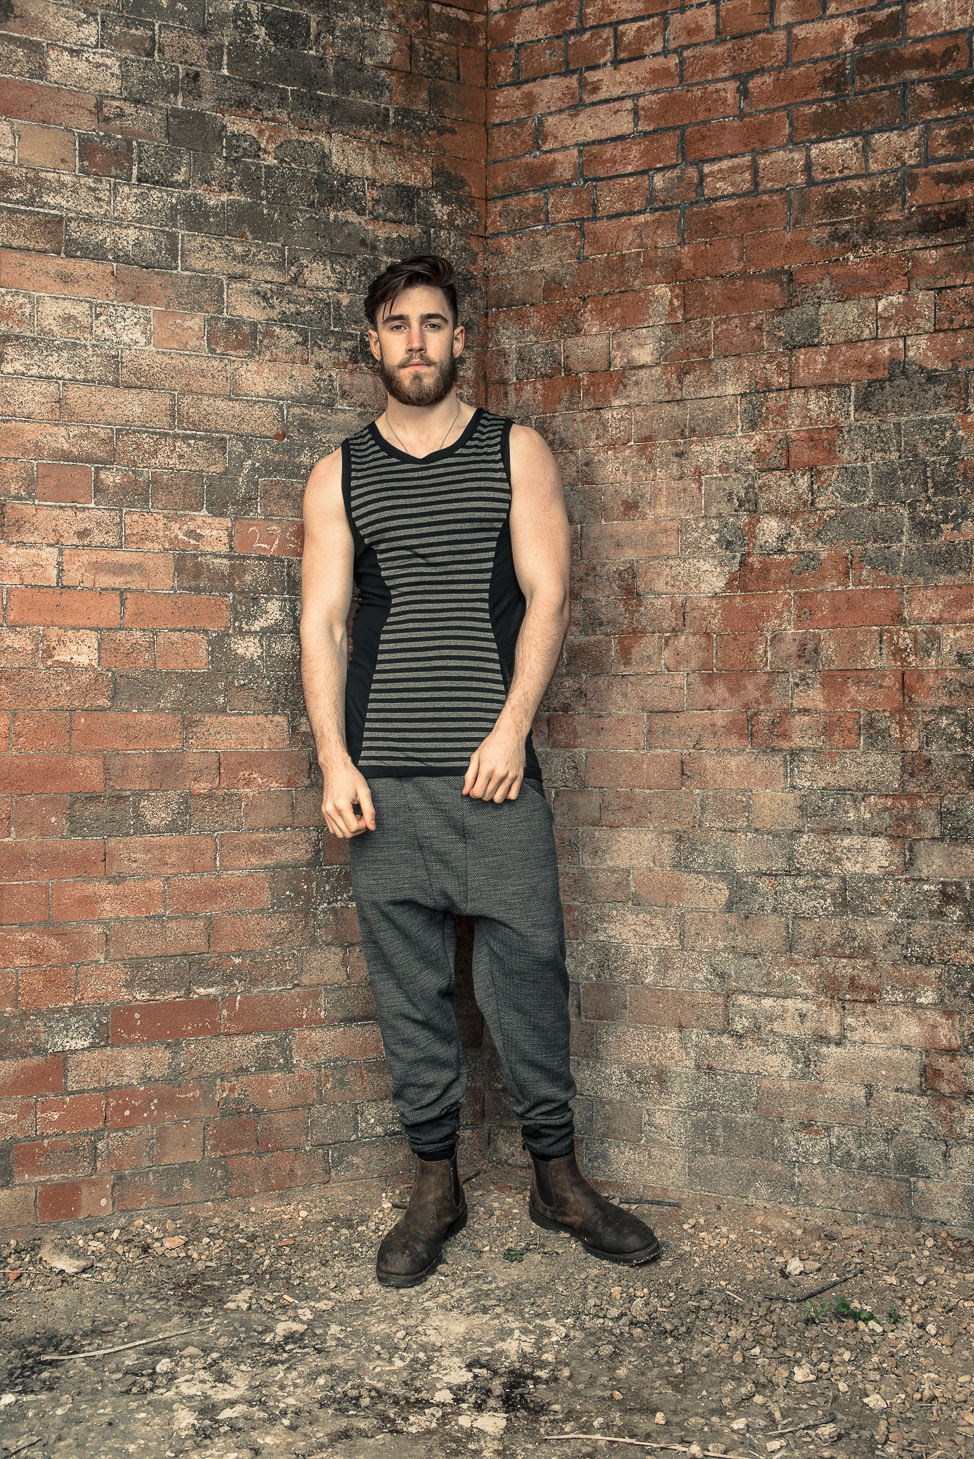 zaramia-ava-zaramiaava-leeds-fashion-designer-ethical-sustainable-tailored-minimalist-stripe-fitted-versatile-drape-grey-tshirt-top-vest-hareem-trousers-black-grey-texture-styling--9